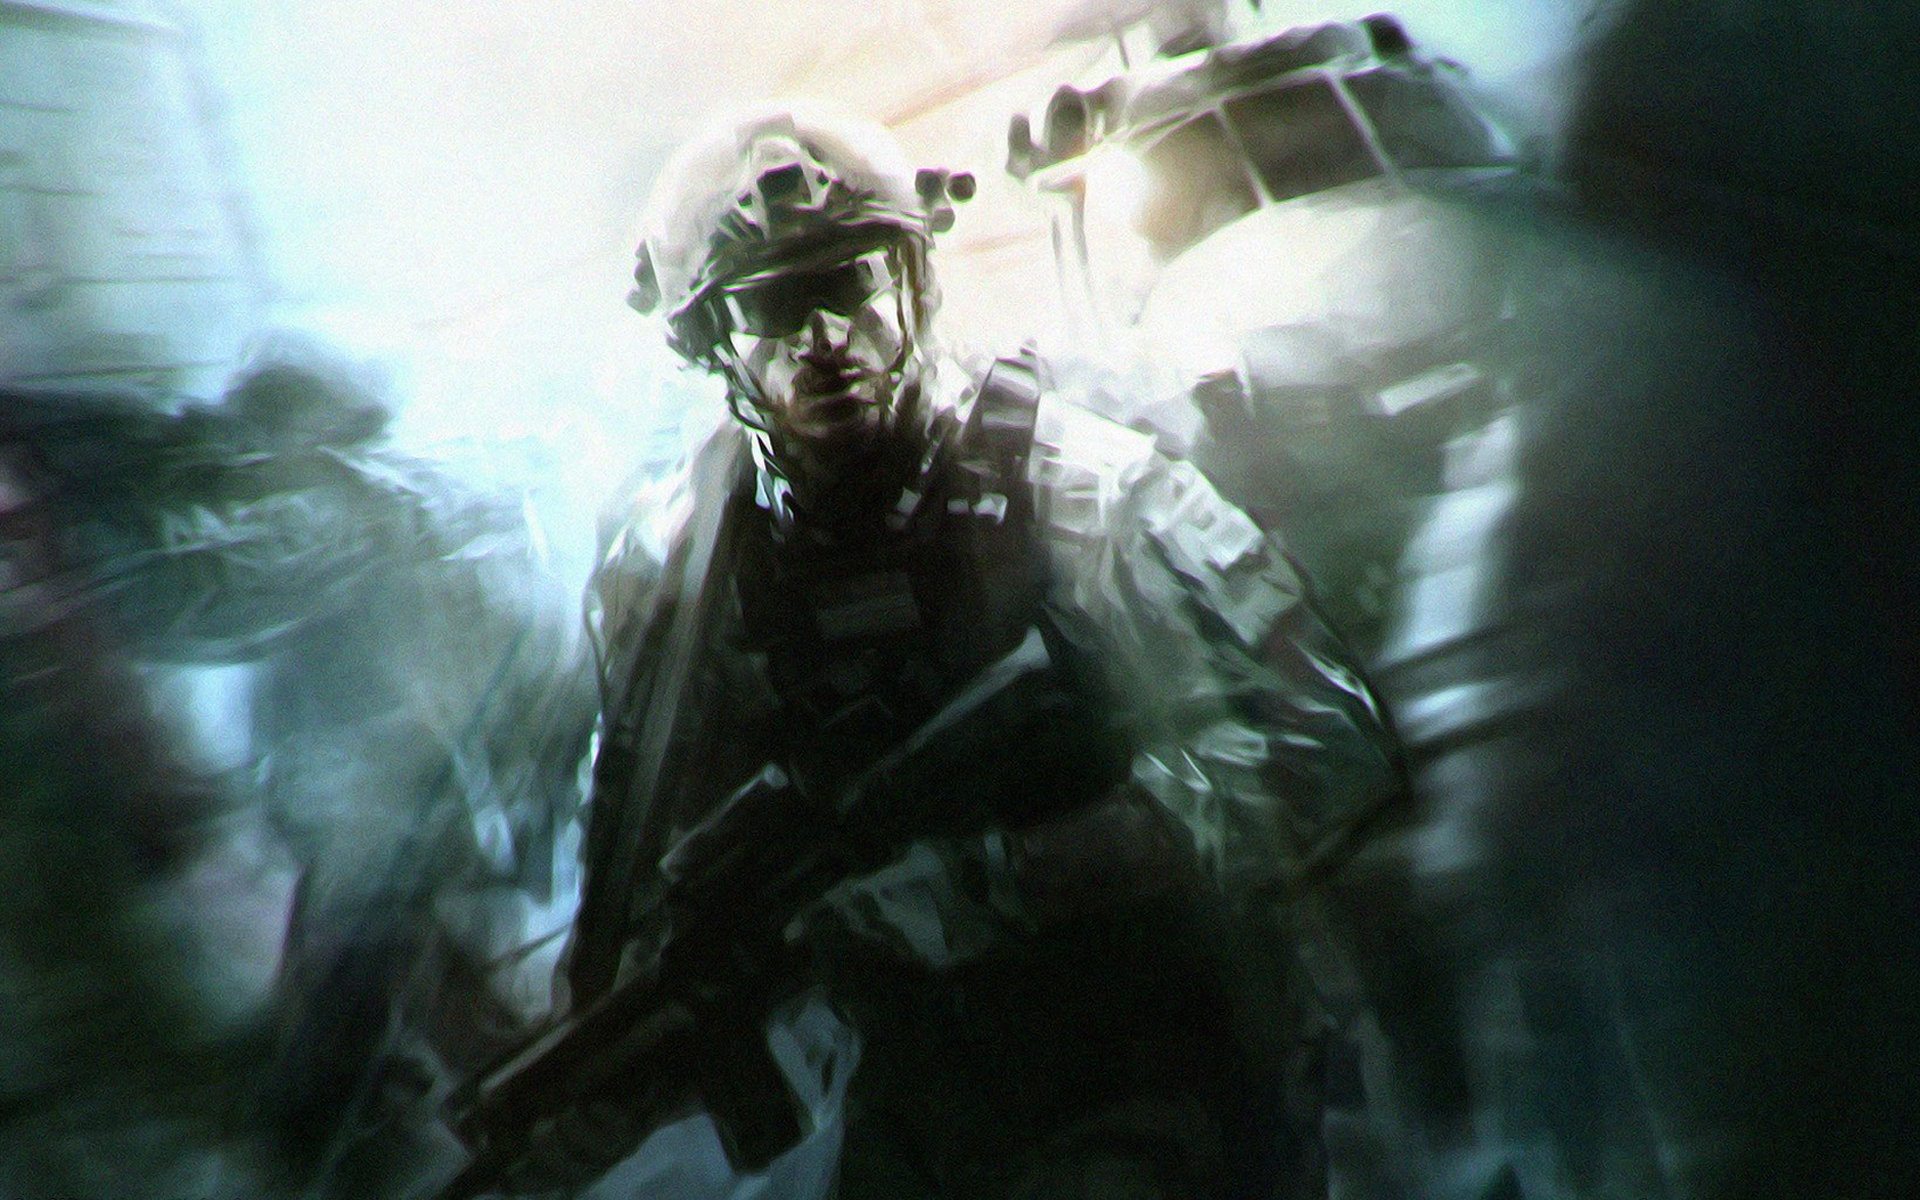 Download Hd 1920x1200 Call Of Duty Modern Warfare 3 MW3 Computer Wallpaper ID